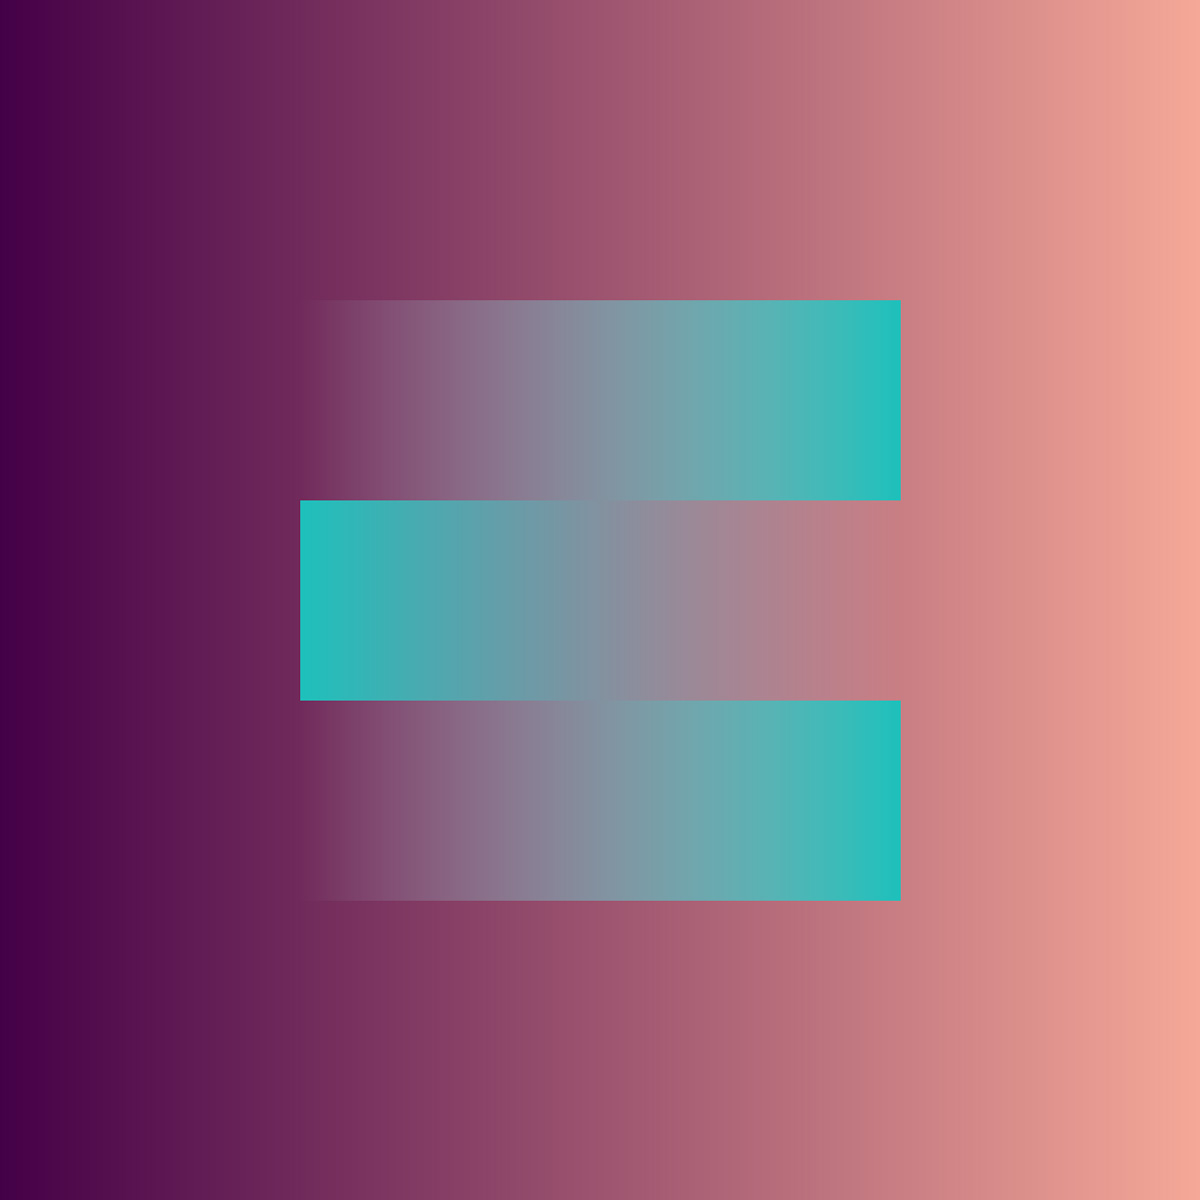 Illustration of the letter E designed with three gradients